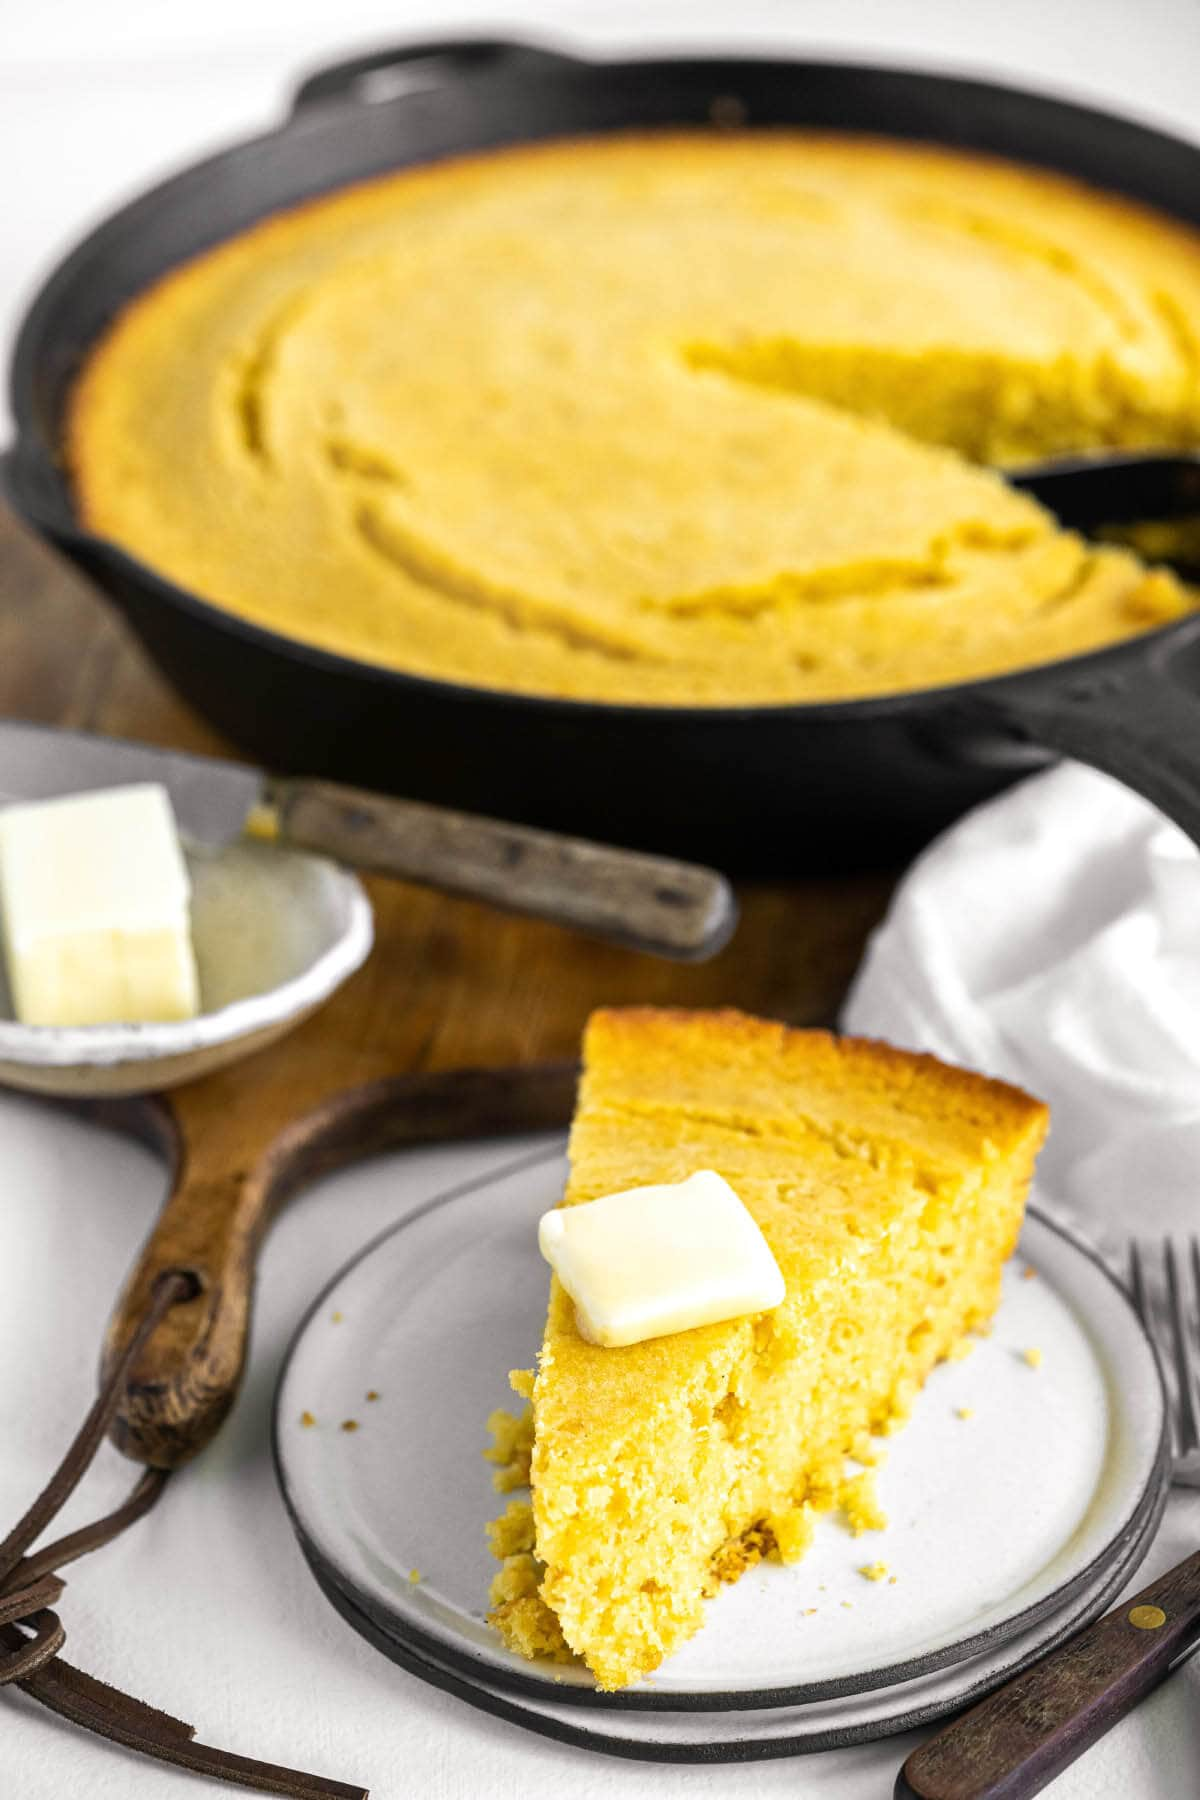 cornbread in the skillet and a slice on a plate.